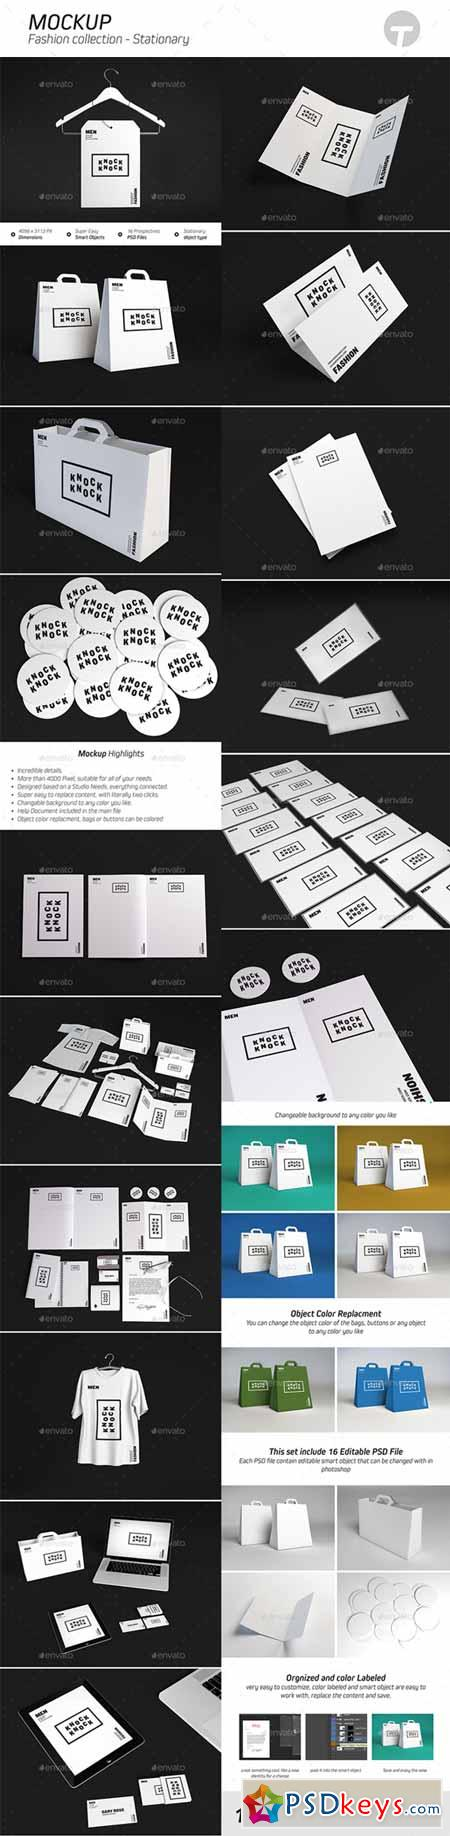 Stationary Mockup ( Fashion Collection ) 9596528